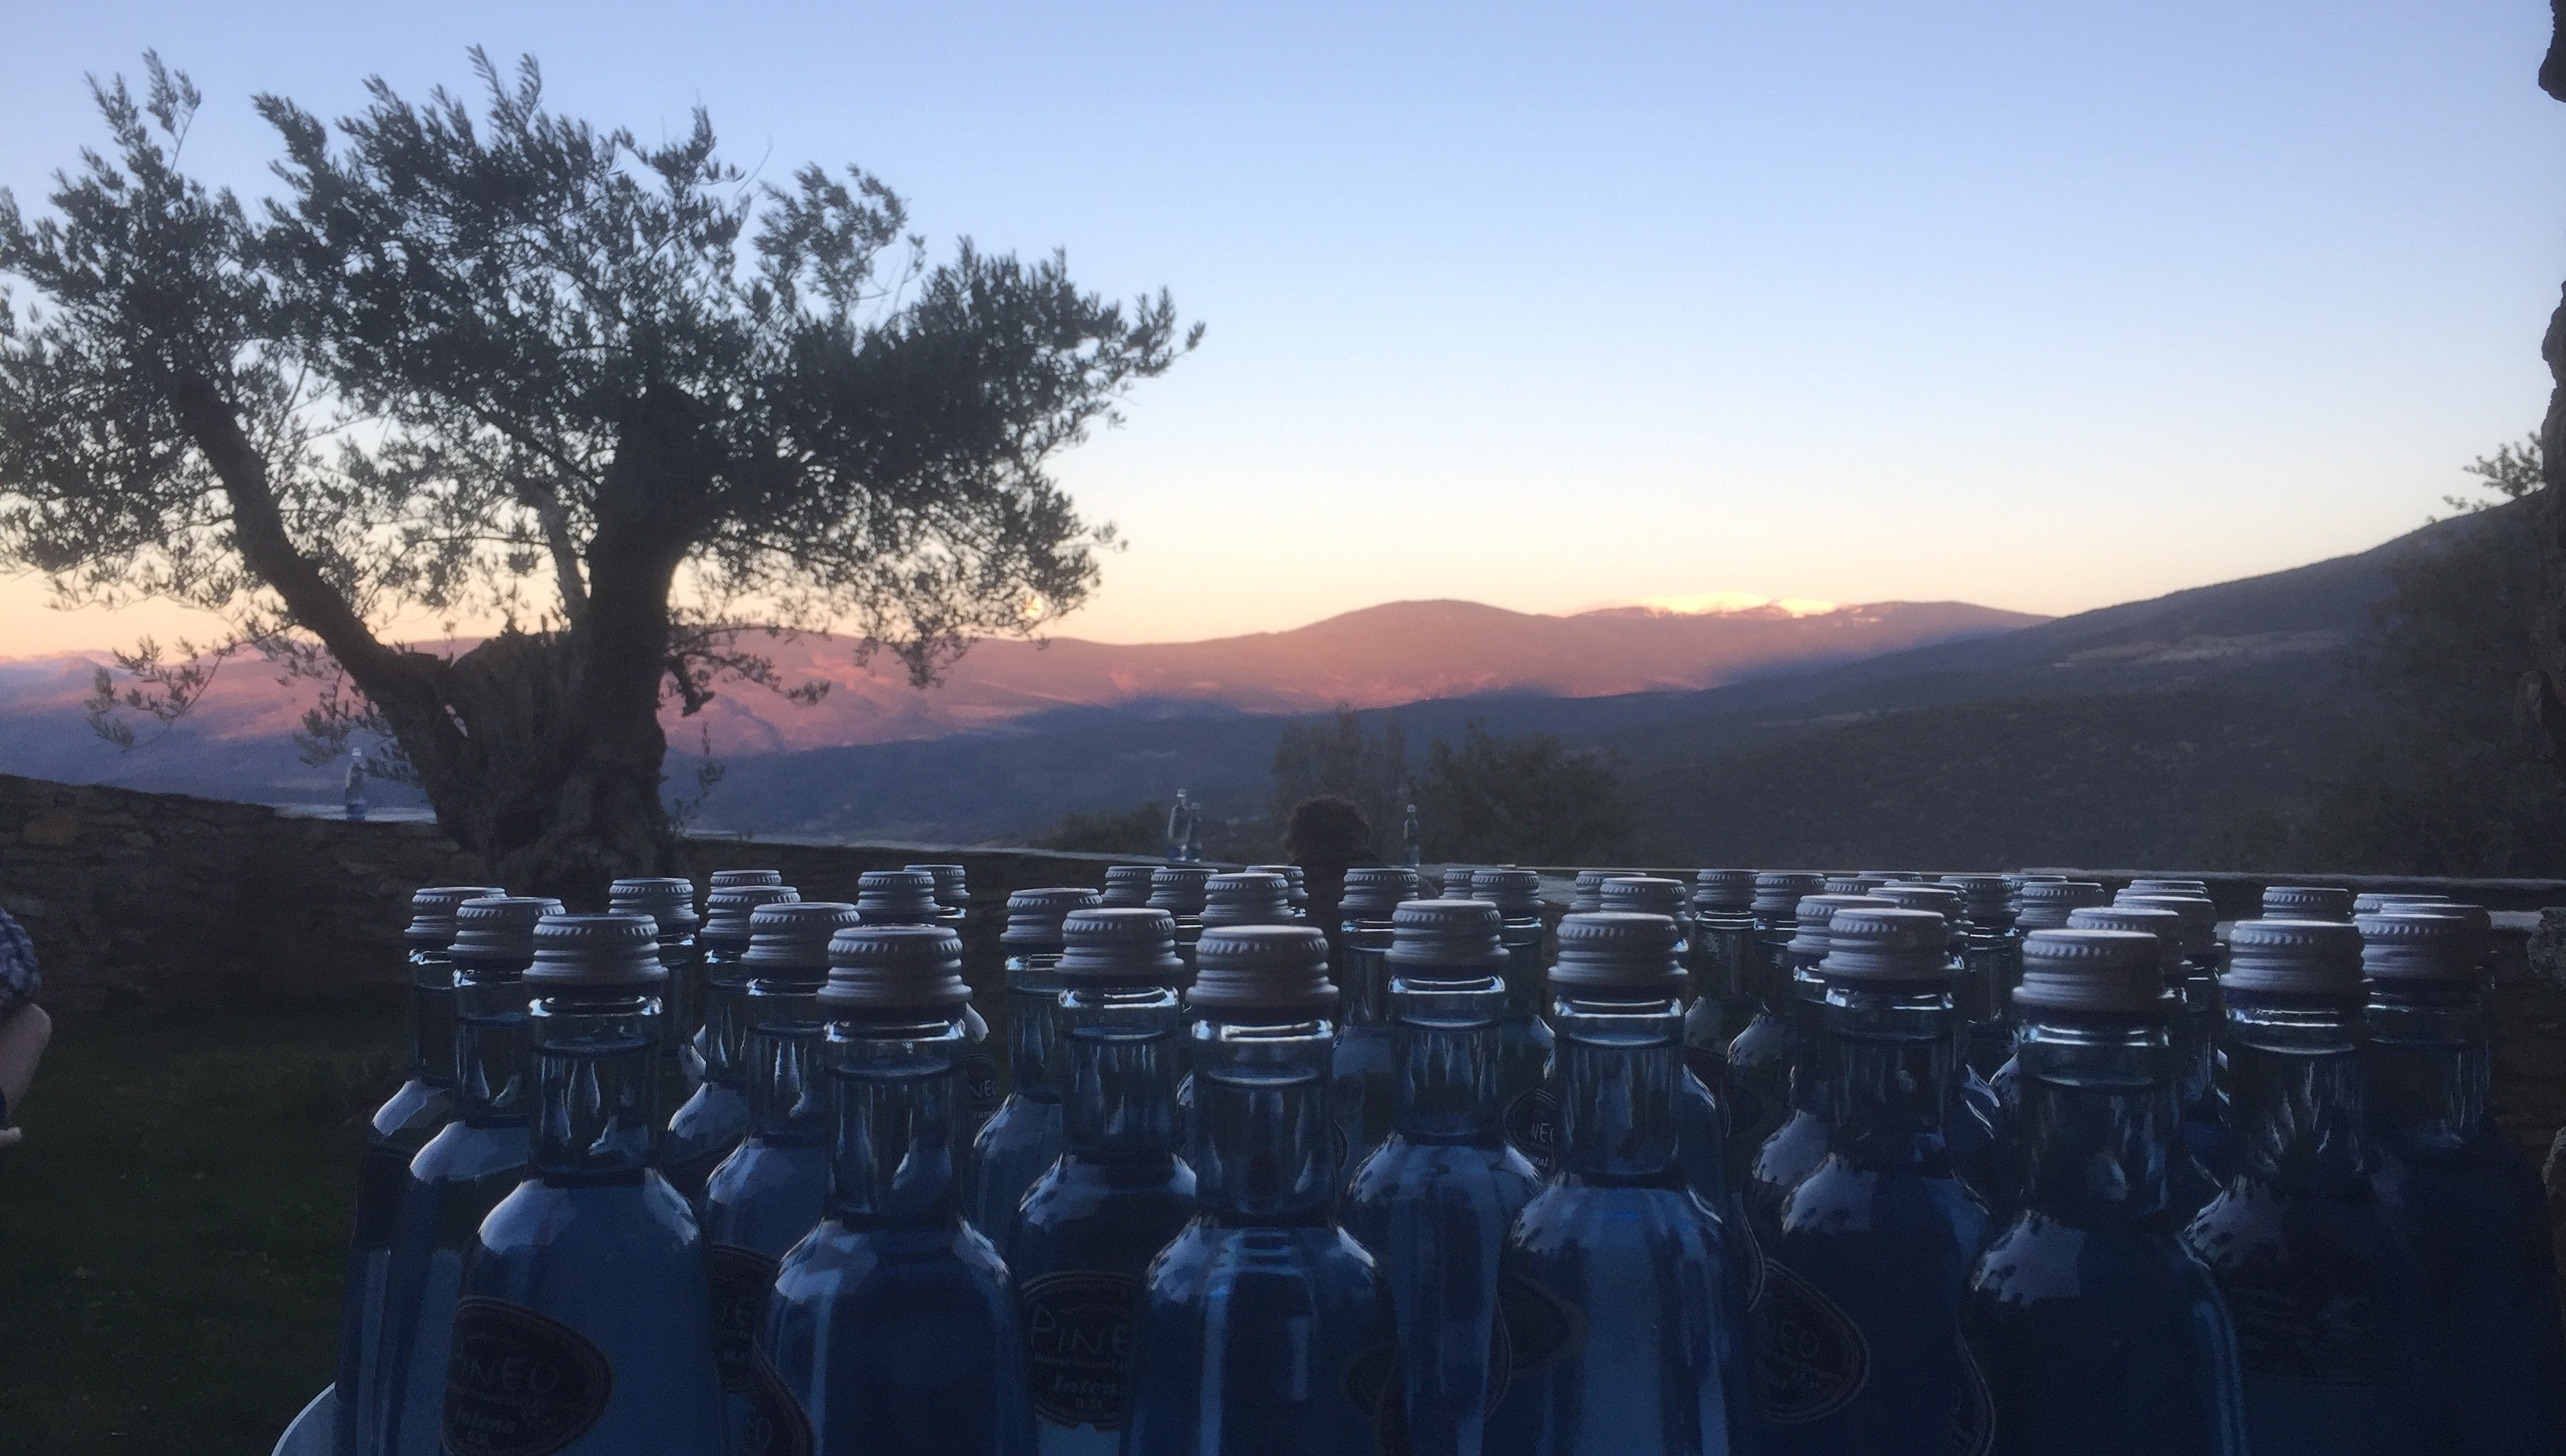 Pineo bottles in the mountains